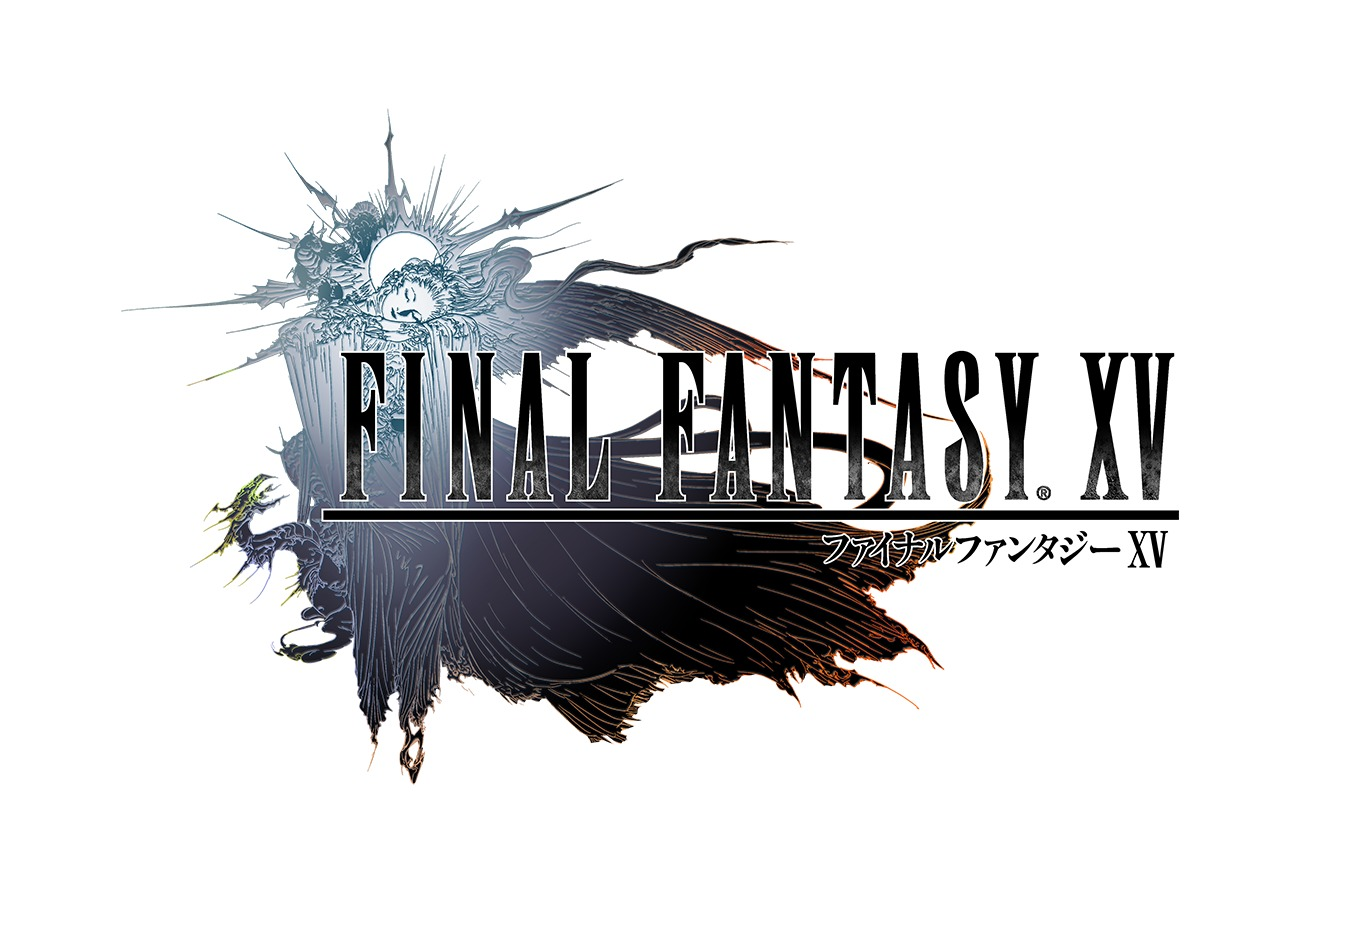 (C)2016 SQUARE ENIX CO., LTD. All Rights Reserved. MAIN CHARACTER DESIGN:TETSUYA NOMURA